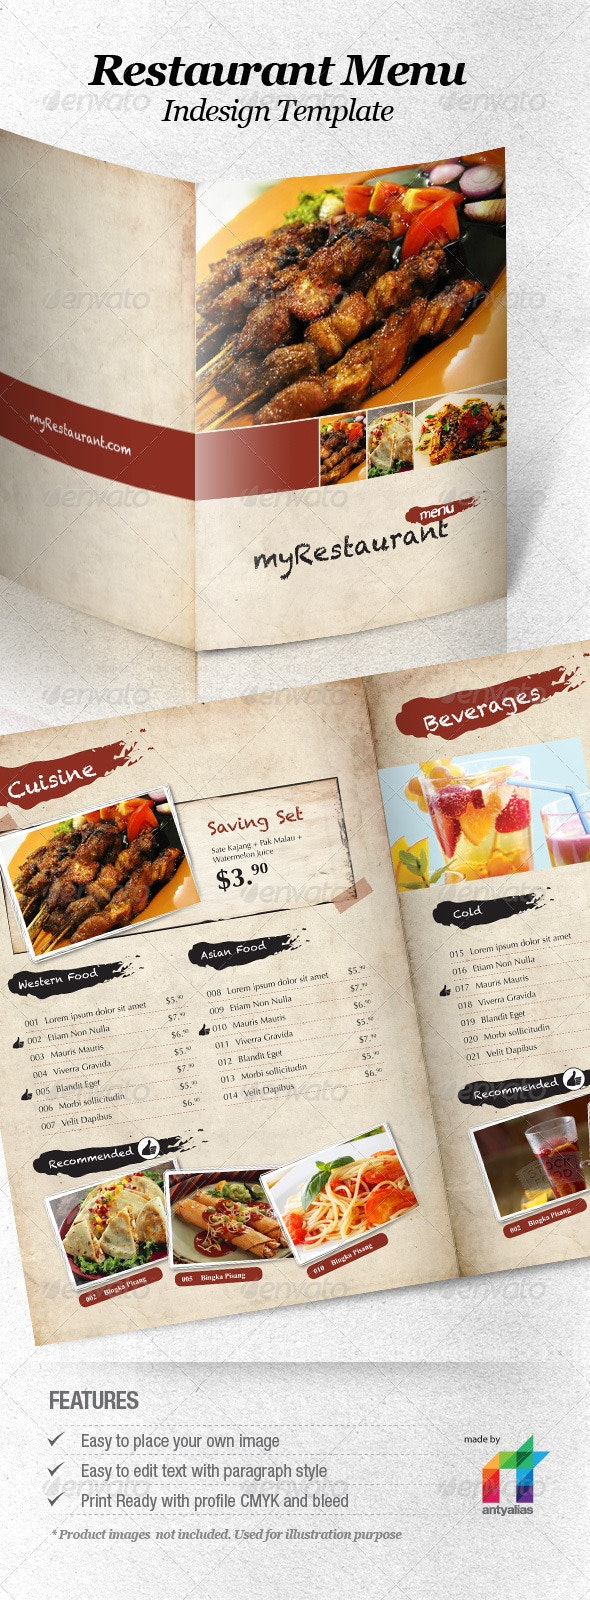 Restaurant Menu Indesign Template - Food Menus Print Templates